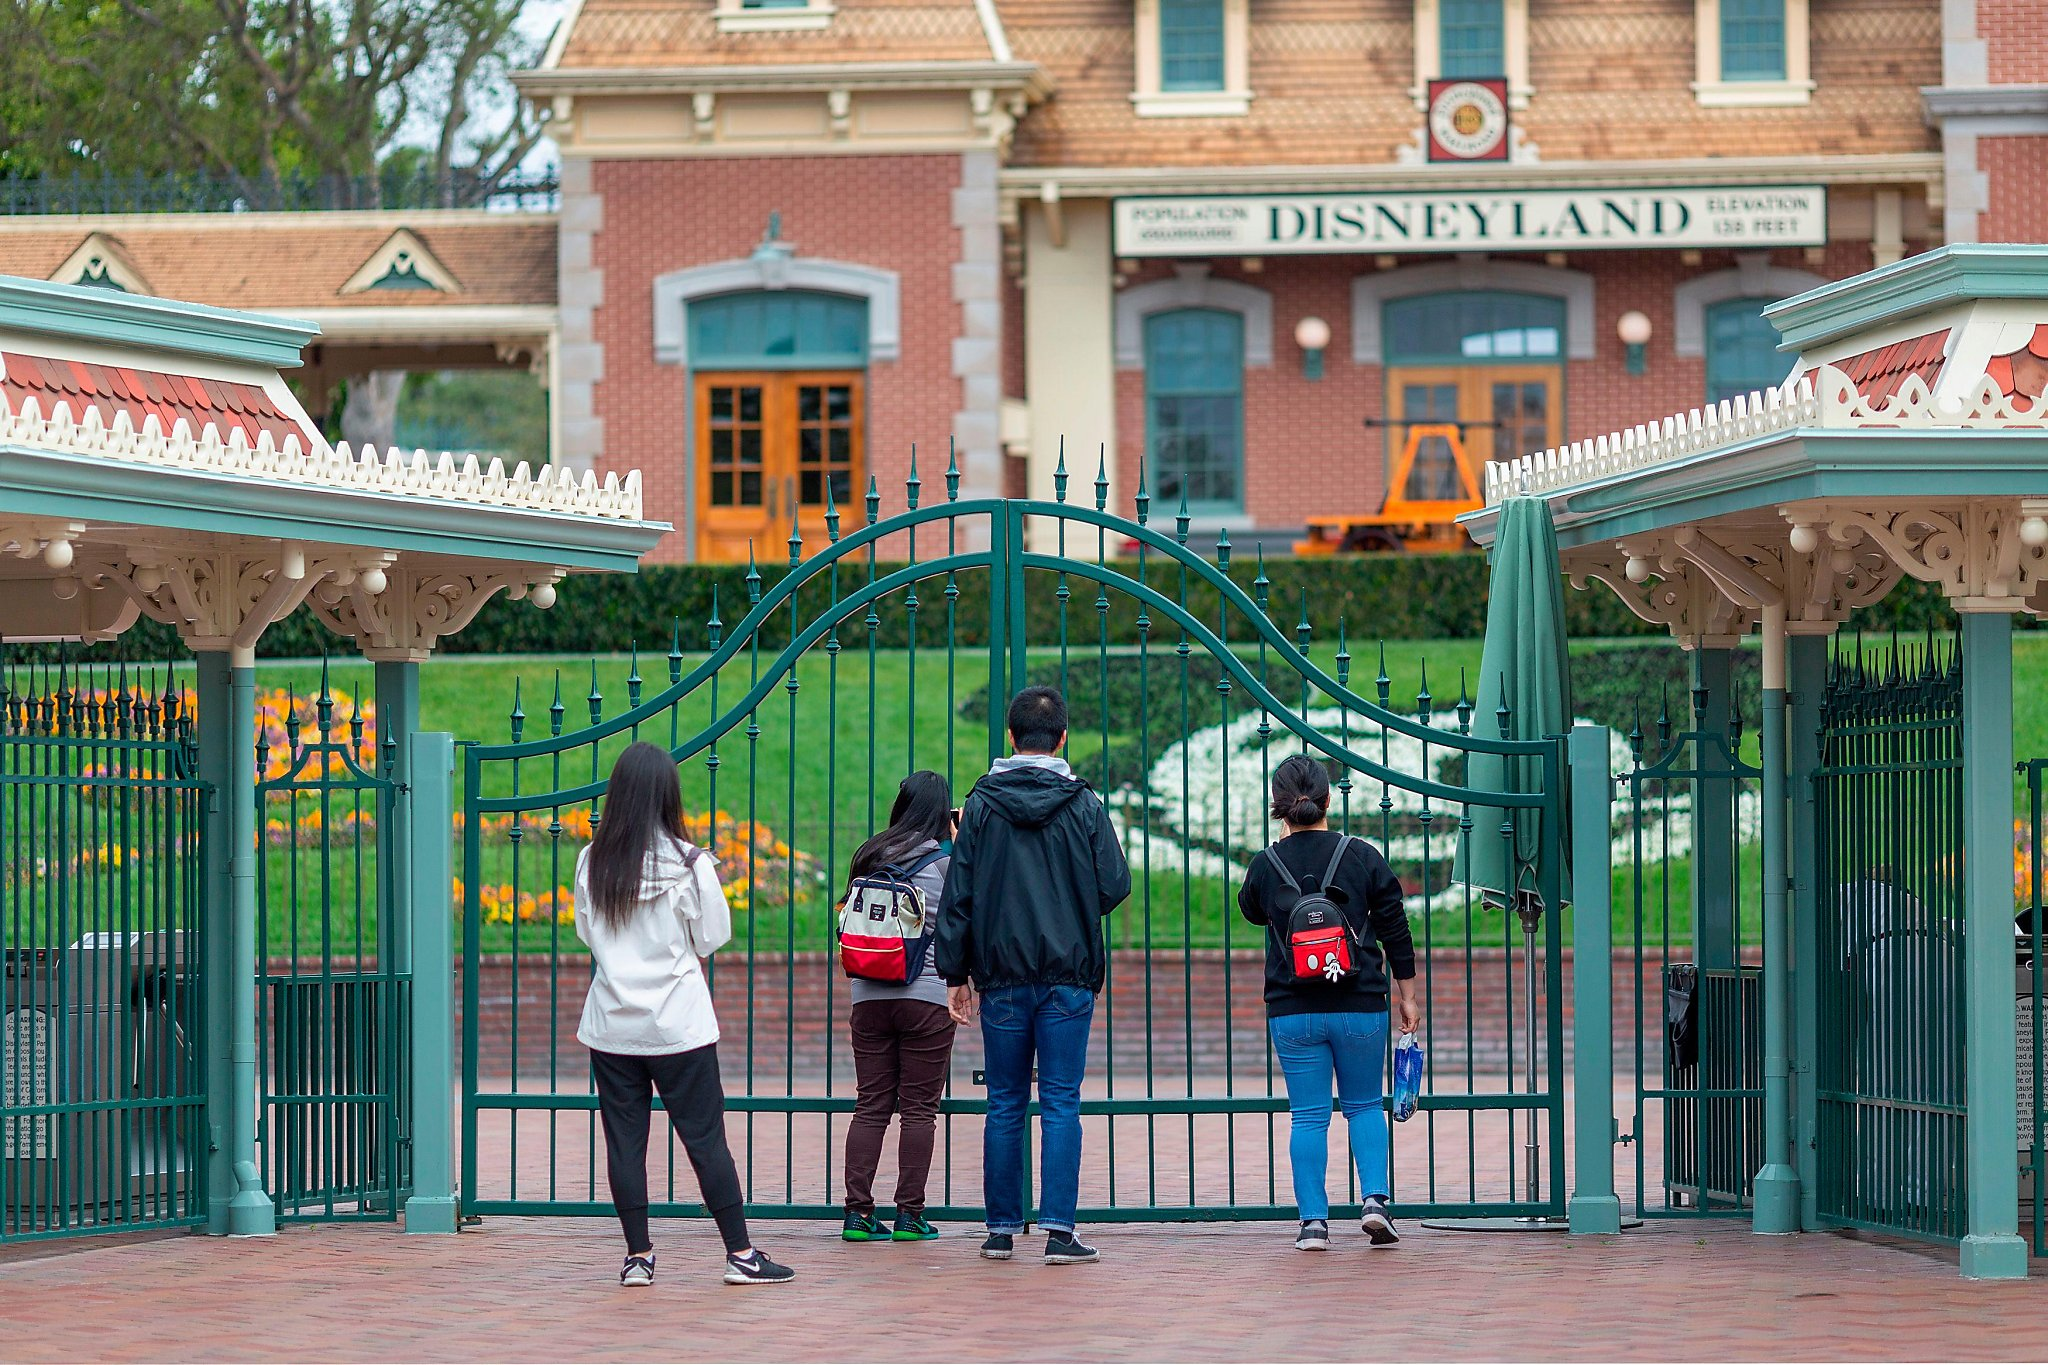 Disneyland fans waiting hours online for a chance to buy a theme park ticket